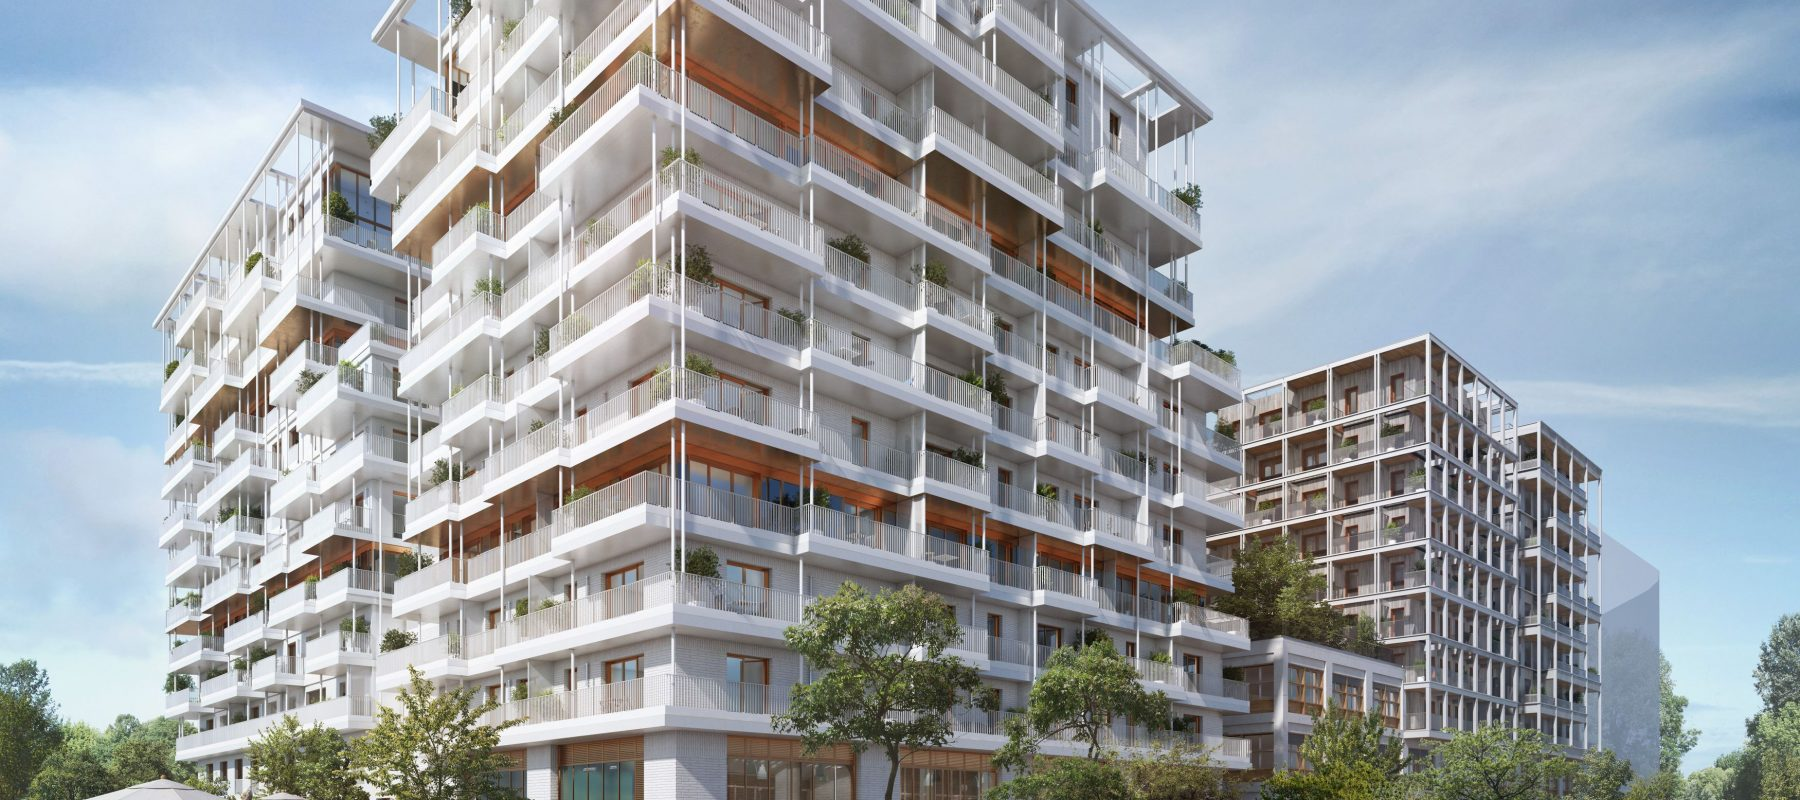 CINETIC - Lot A2 - 152 logements